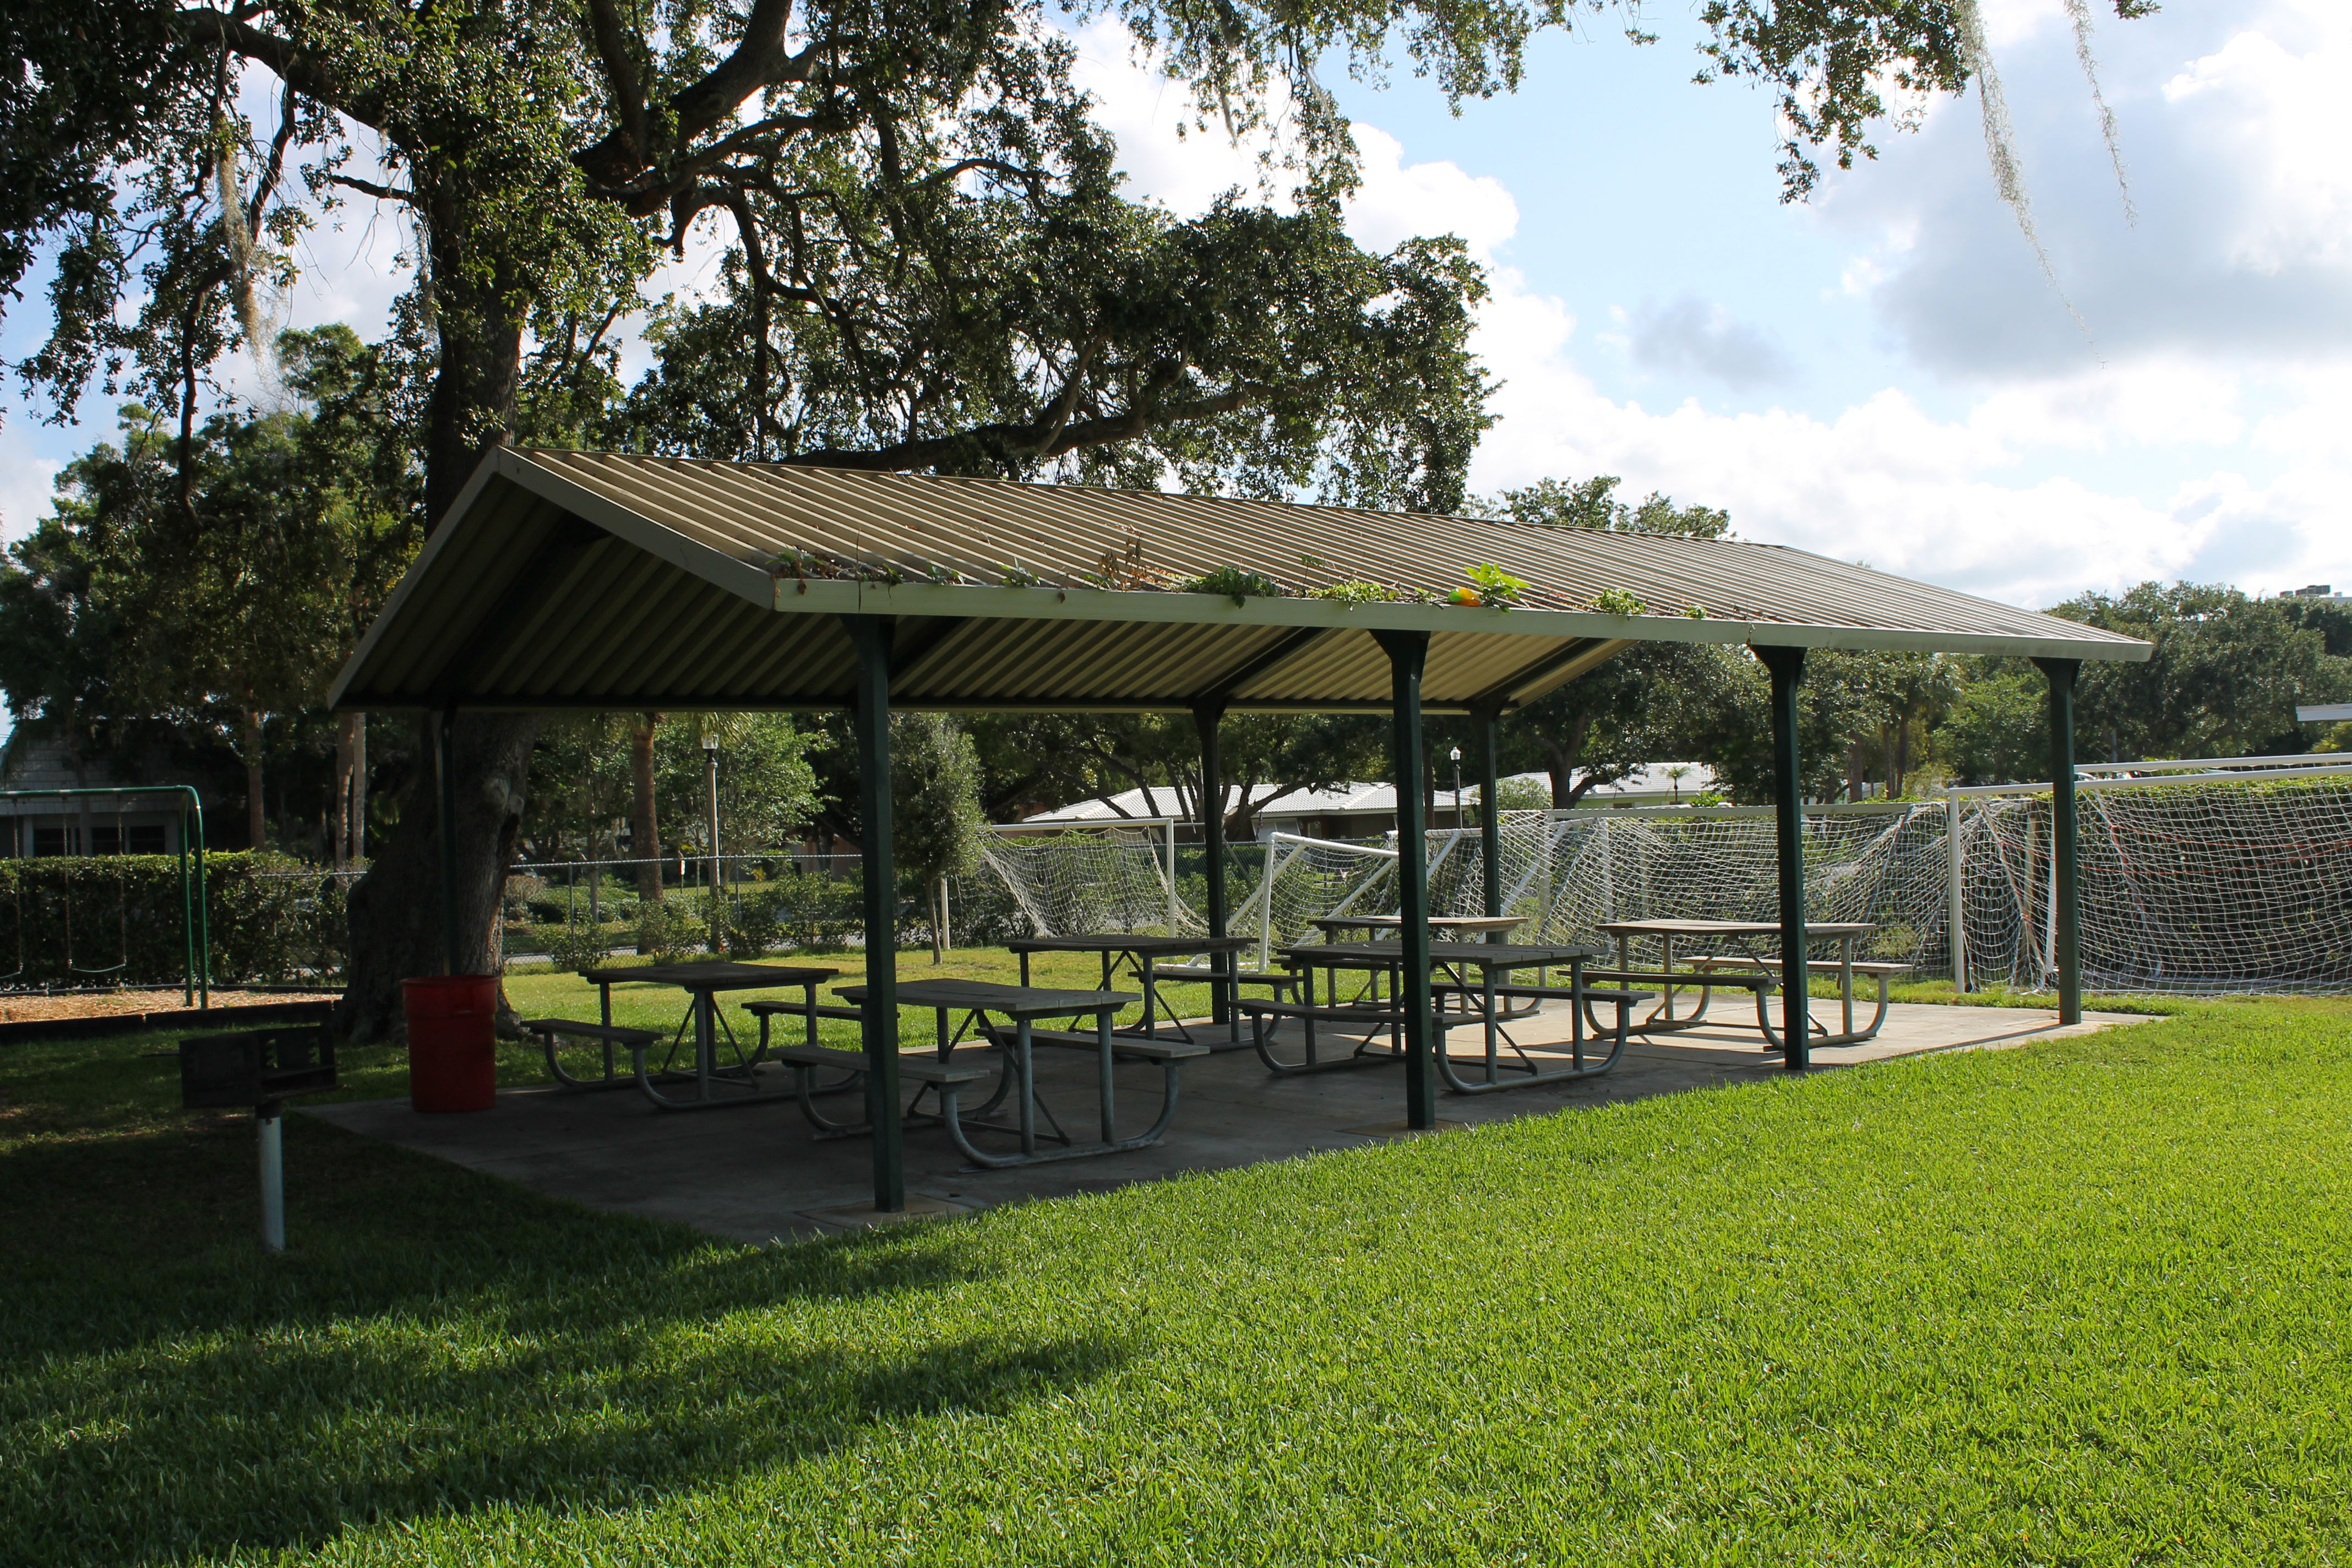 Covered pavilion with benches beneath it on the east athletic field in Belleair